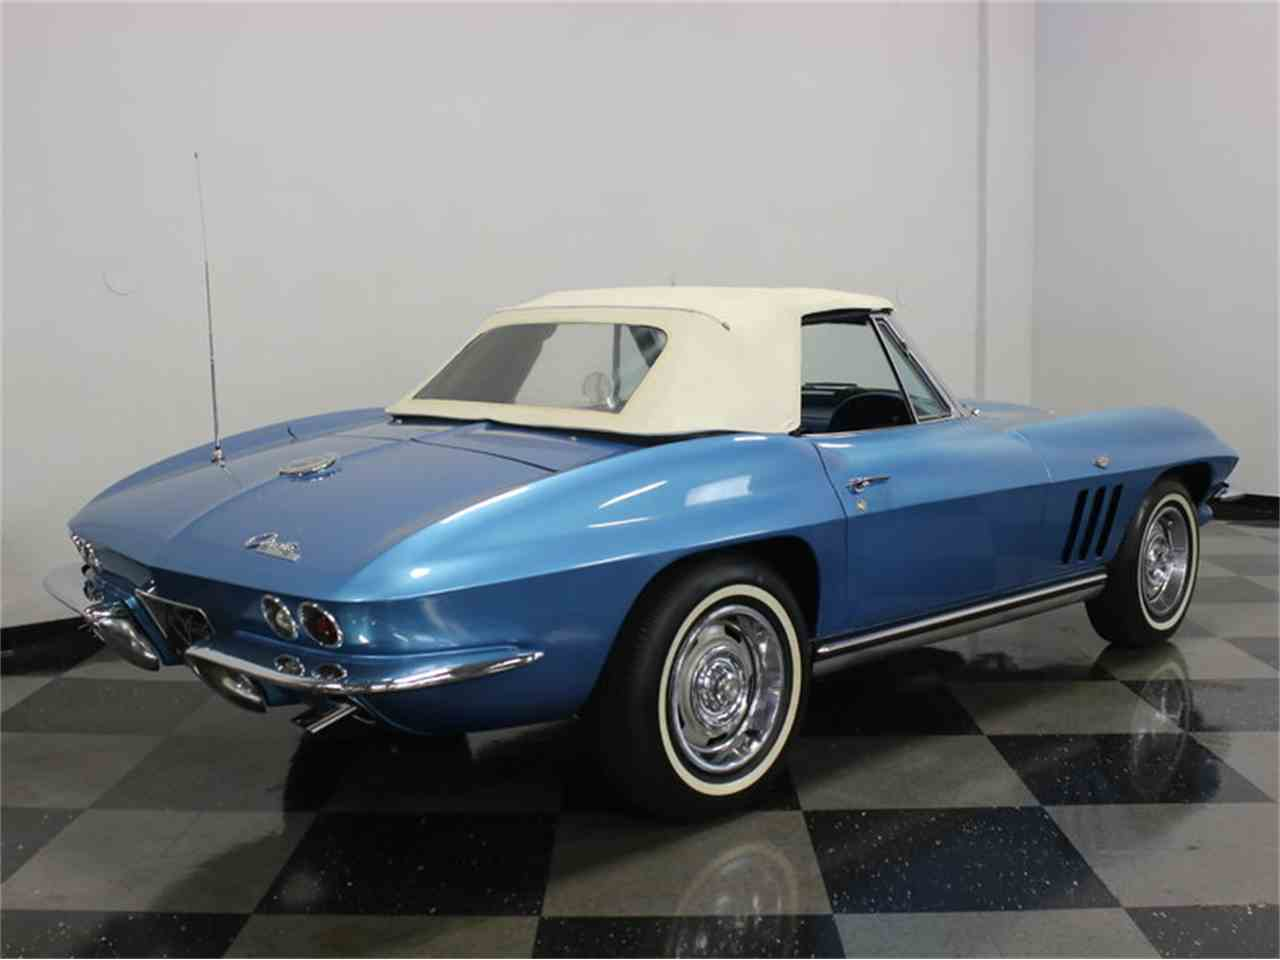 Large Picture of 1965 Chevrolet Corvette - $47,995.00 Offered by Streetside Classics - Dallas / Fort Worth - JRNP